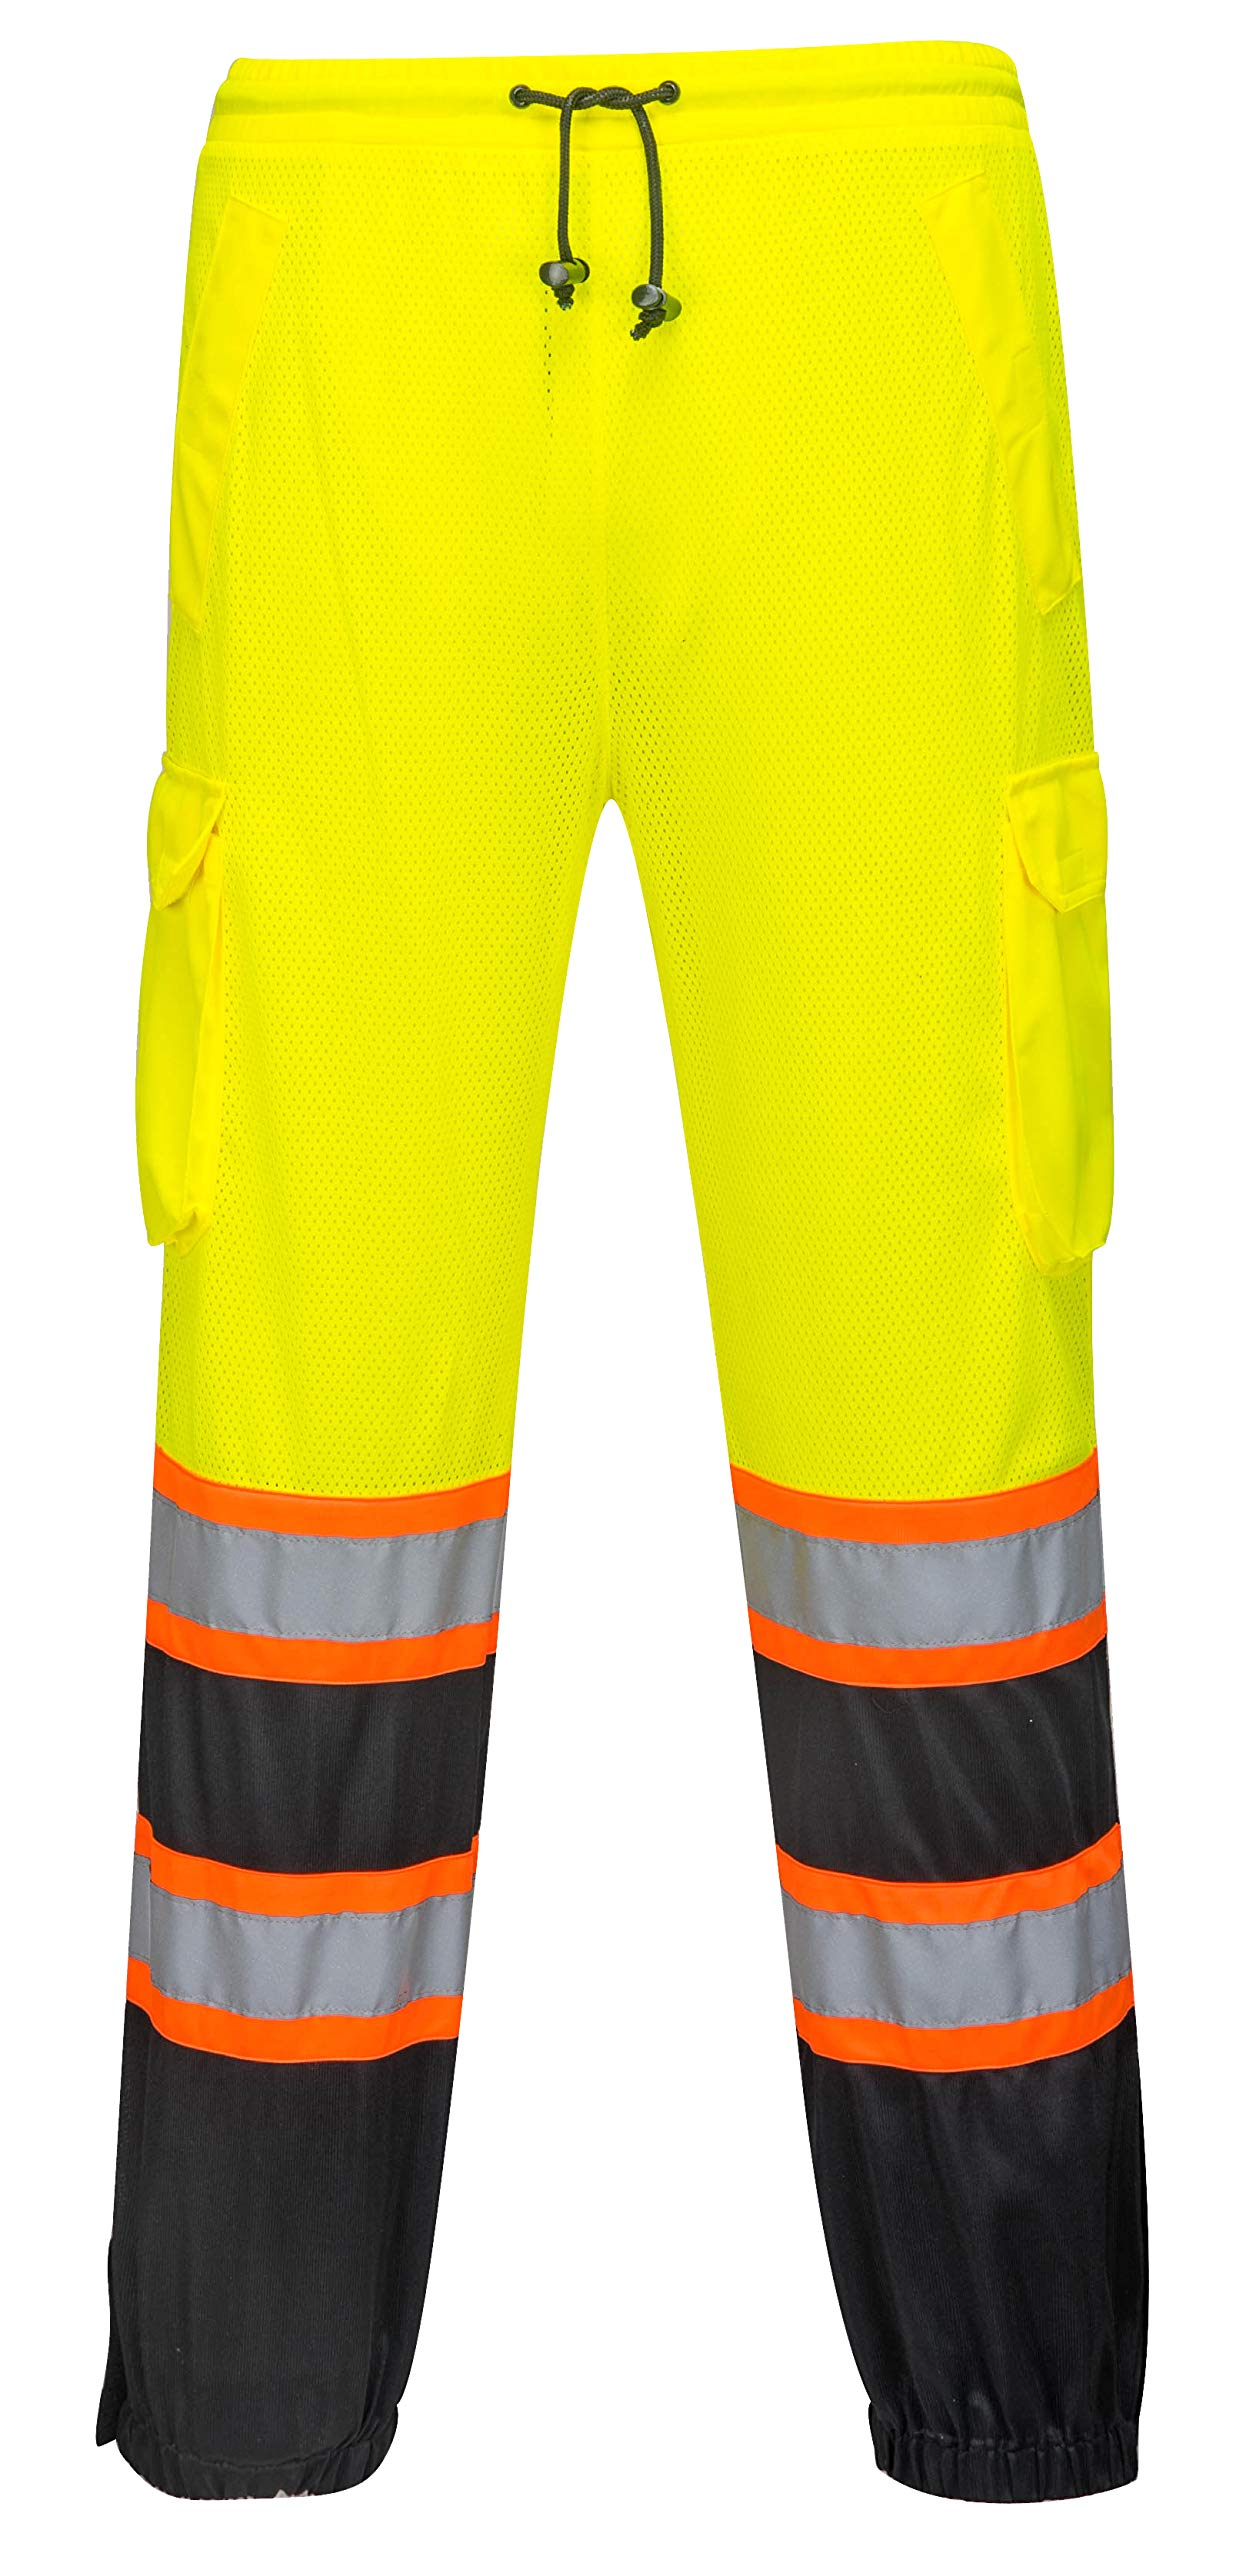 Two Tone Mesh Overpants for Men and Women - Safety Waterproof Work Wear - High Visibility (Large/Extra Large, HiVis Yellow/Black)